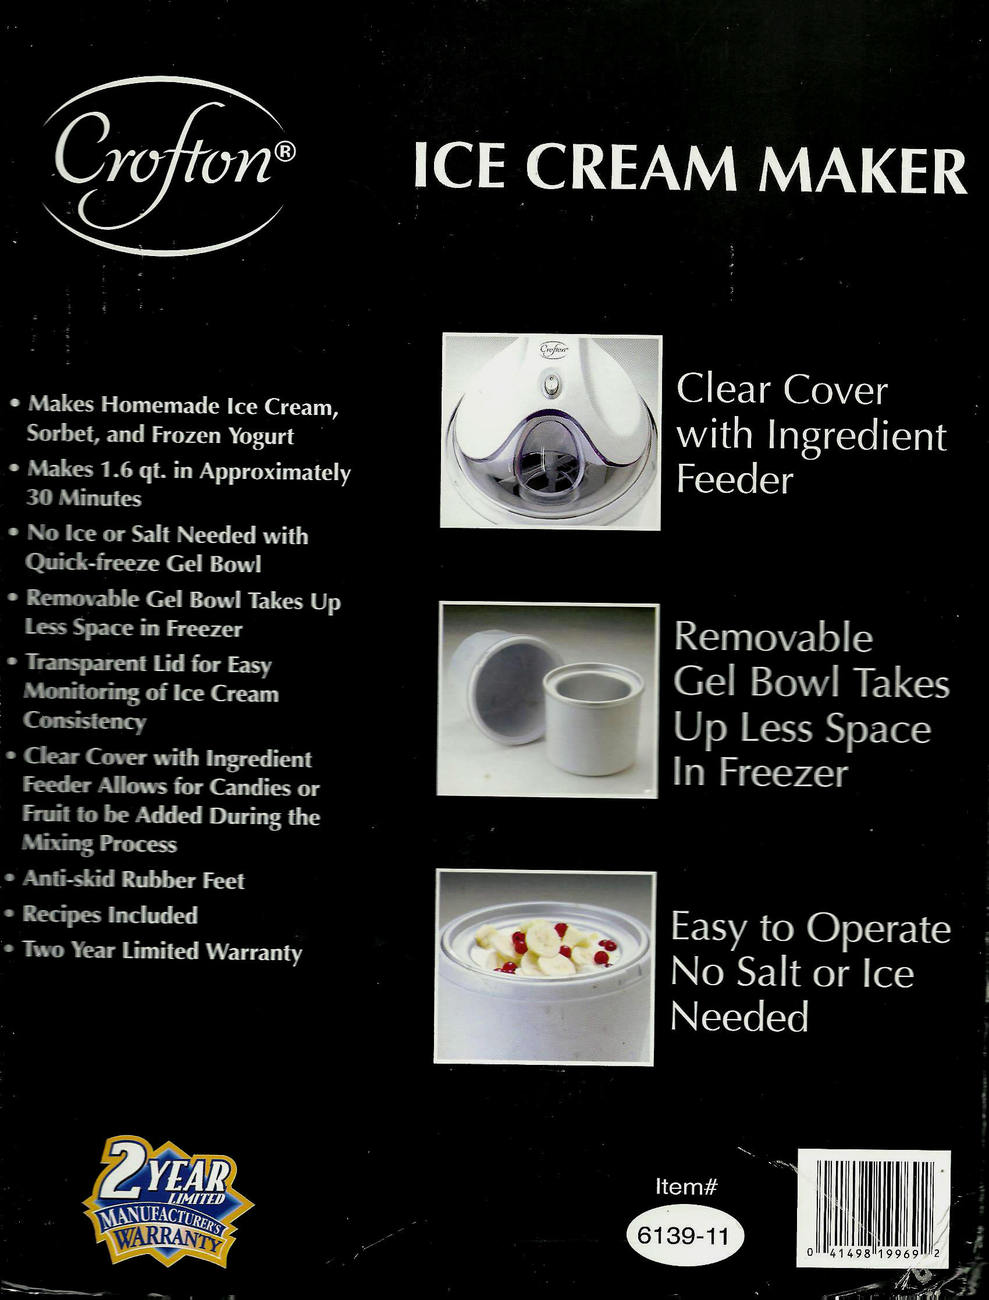 Crofton_ice_cream_maker_006